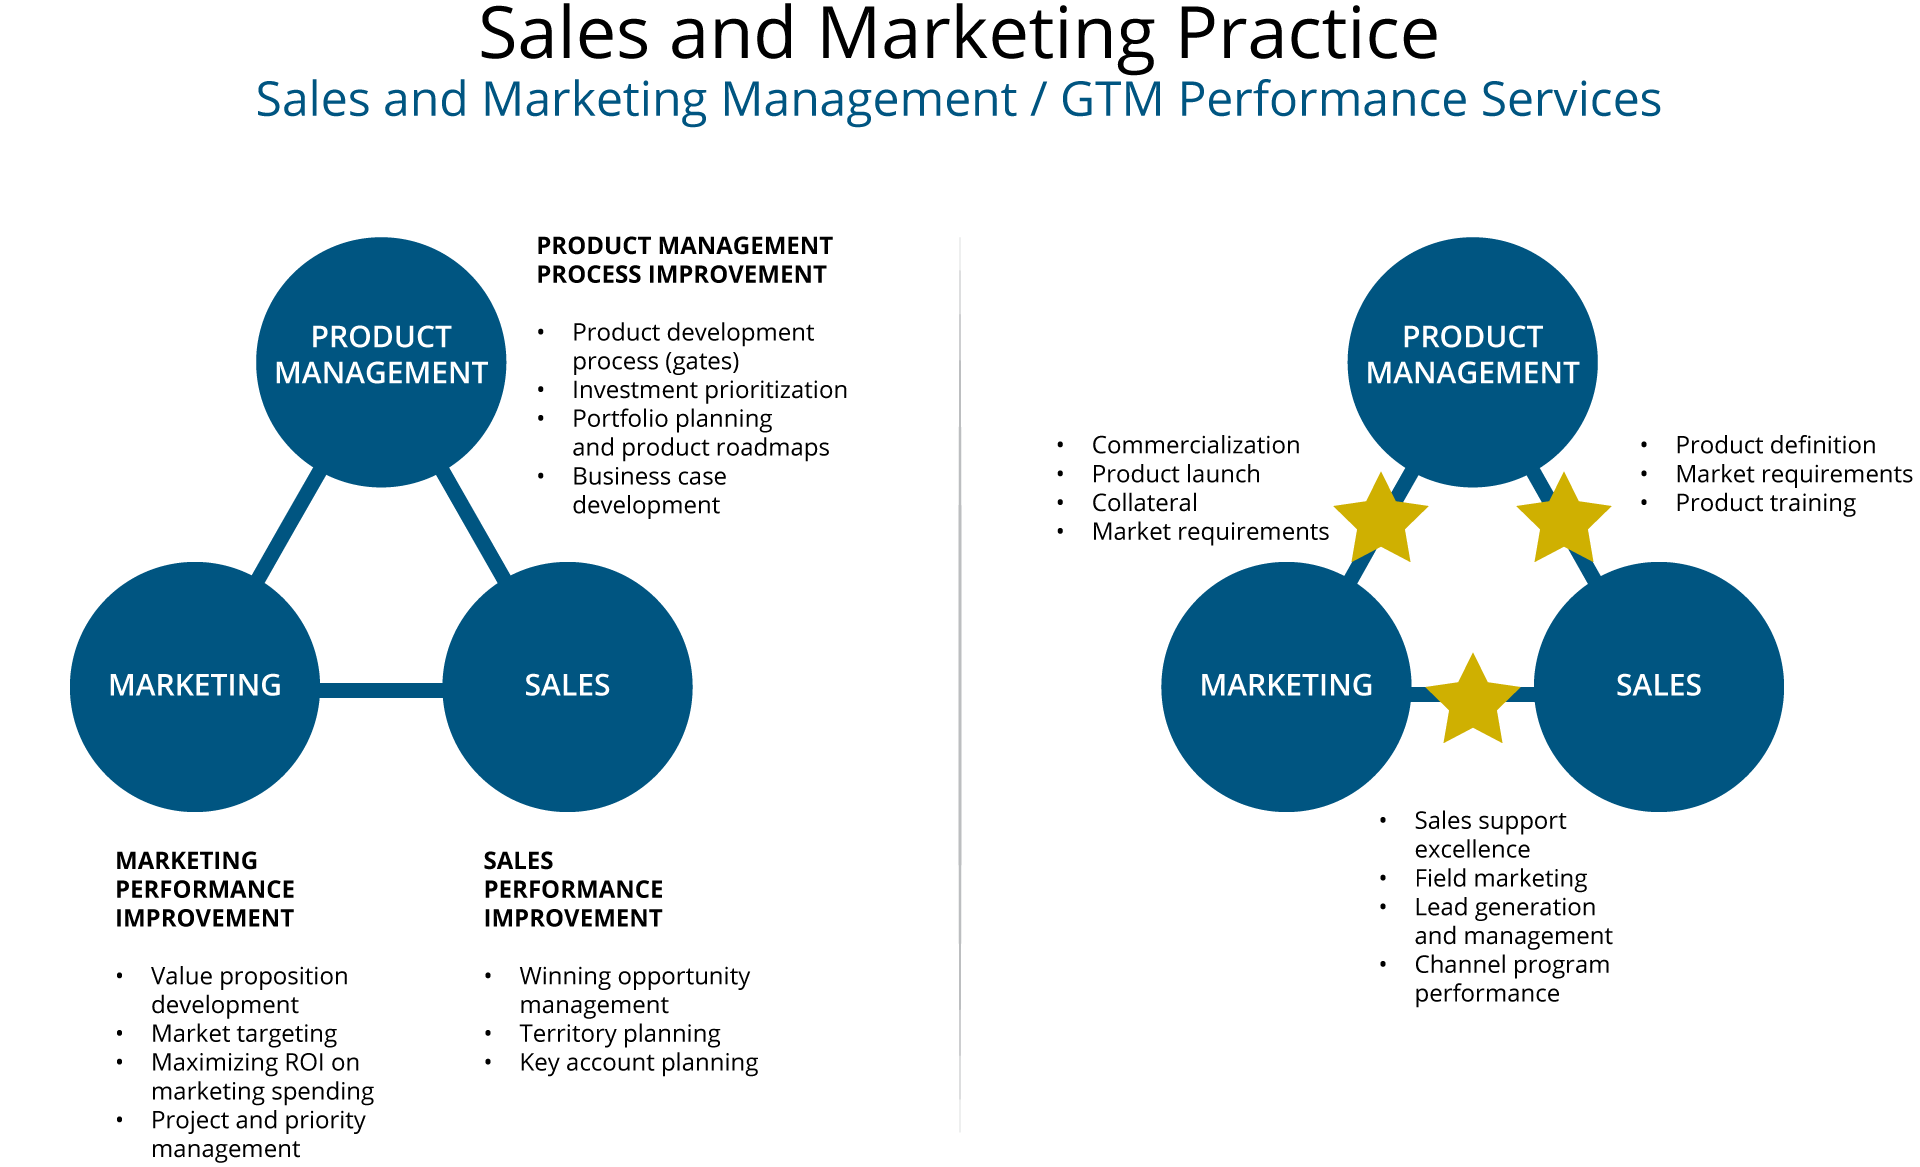 Sales and Marketing Practice Methodology